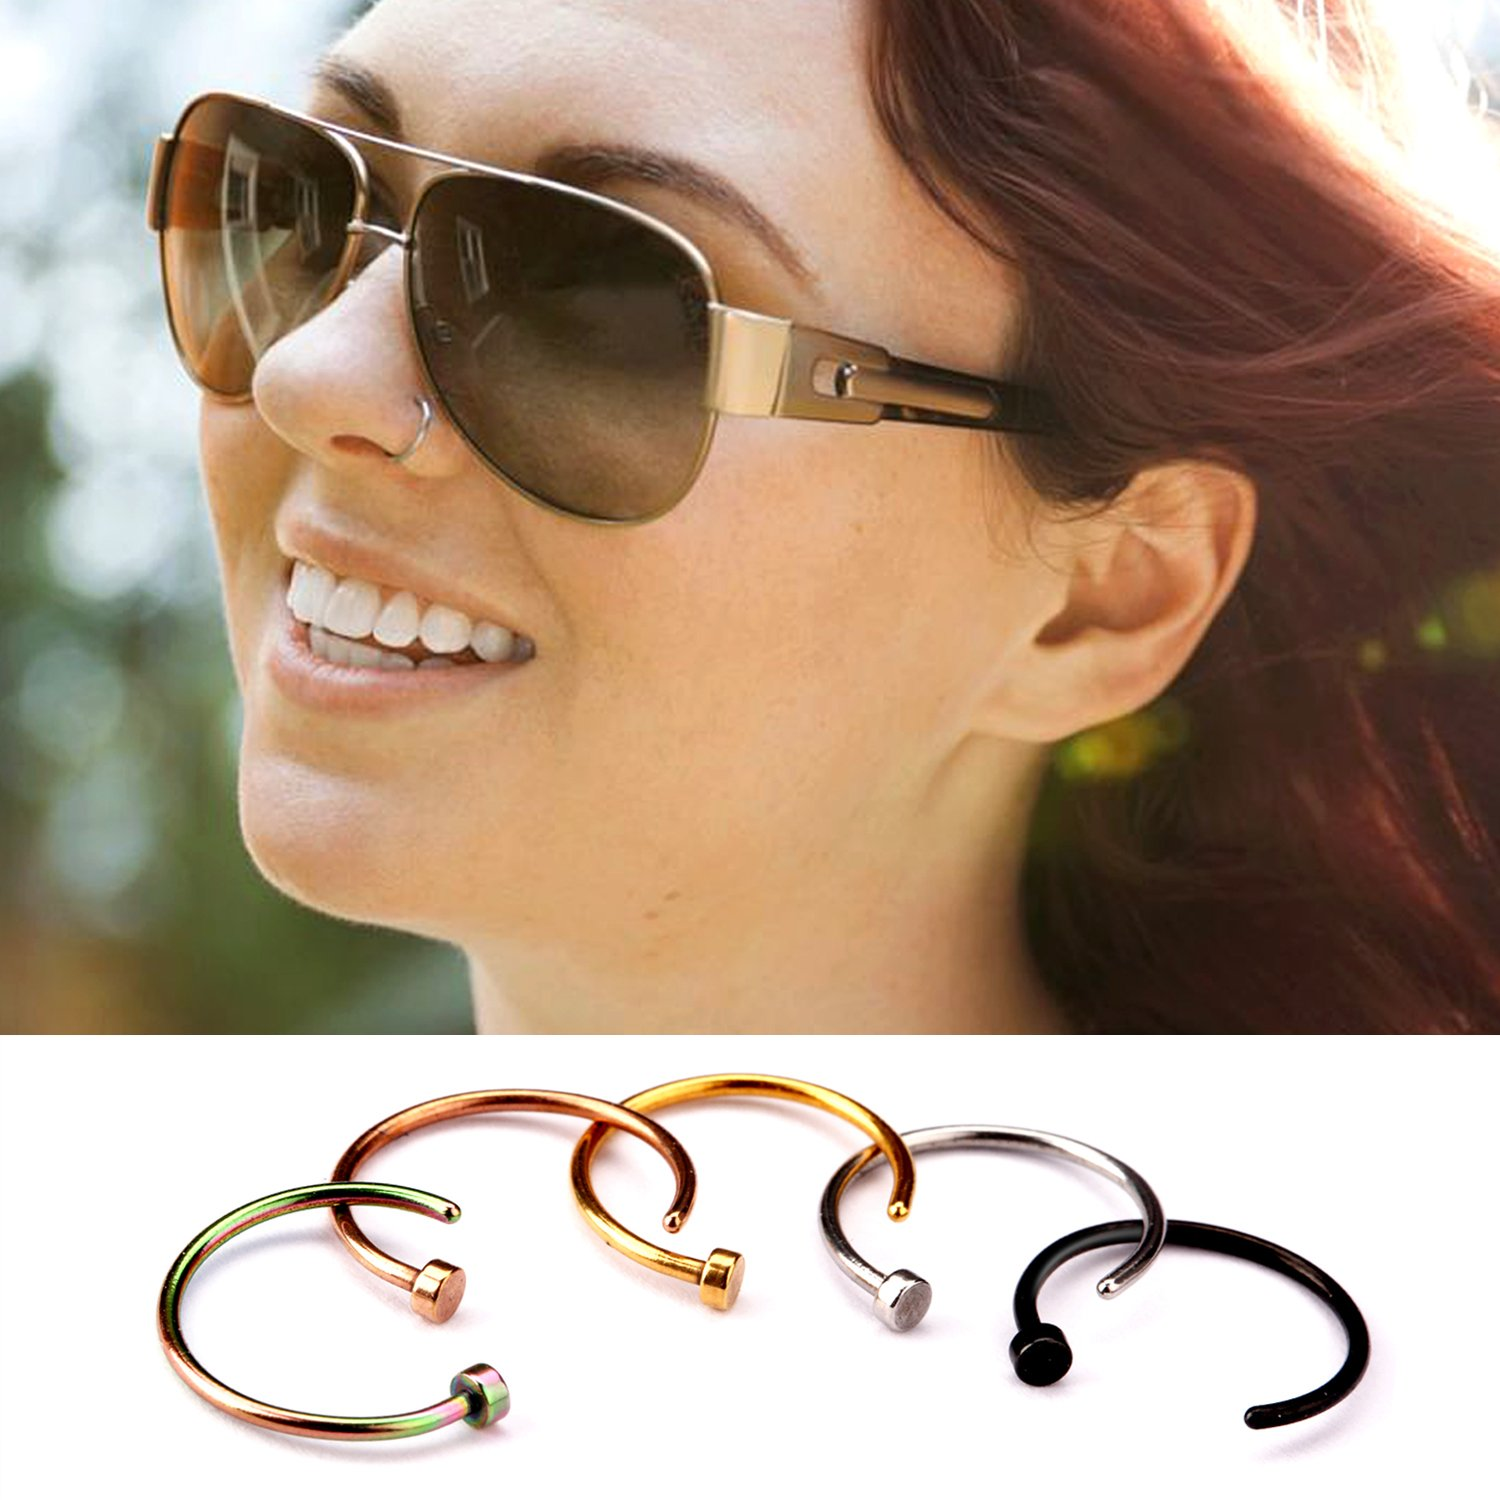 UHIBROS Nose Ring Hoop, 5 Pcs a Set 316L Stainless Steel Nose Rings Hoop Nose Piercing Body Jewelry,Unisex (Sliver)